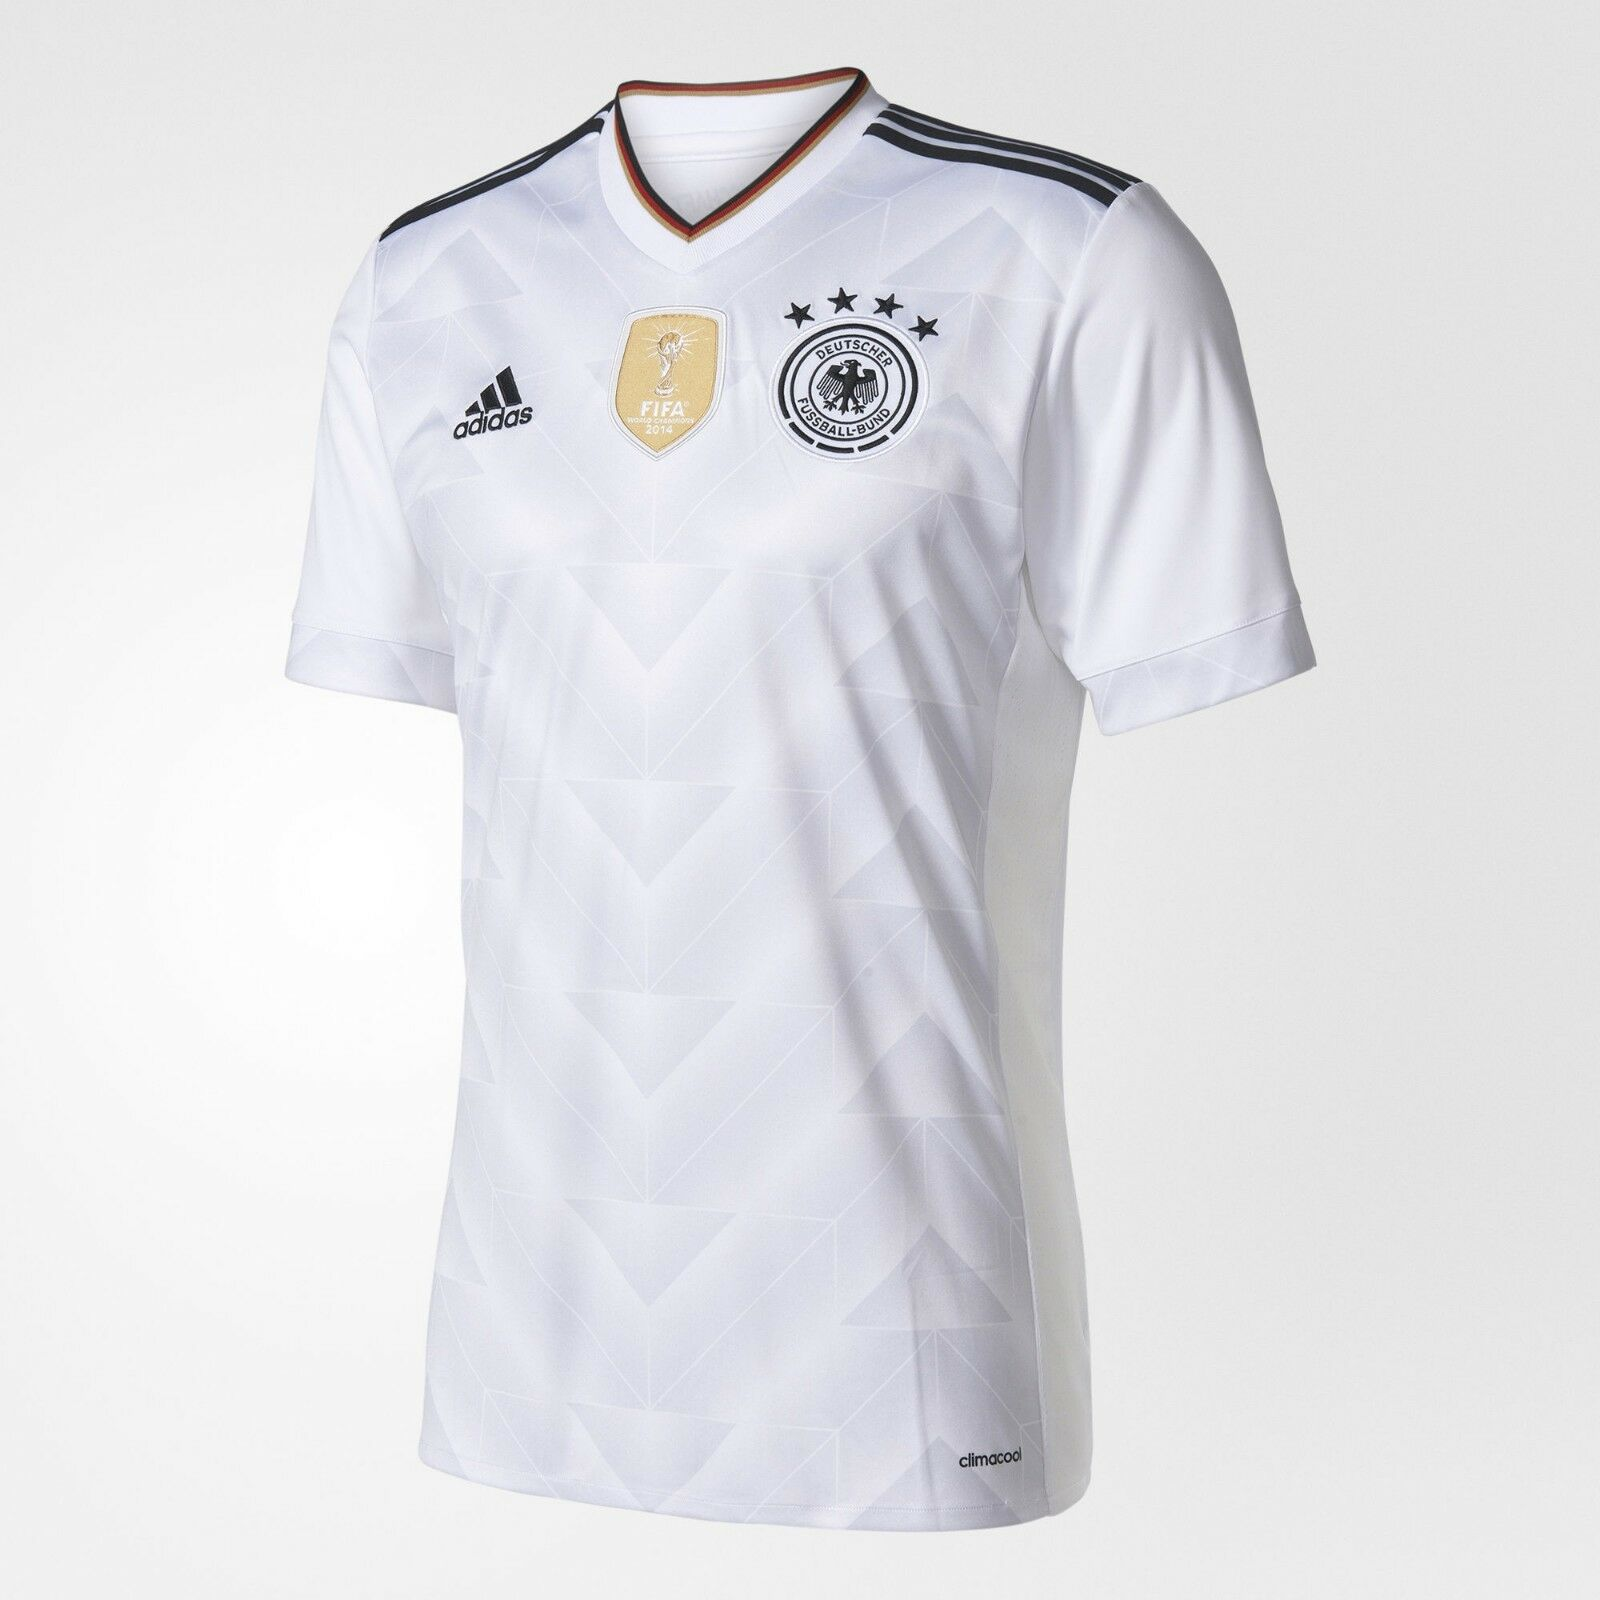 ADIDAS DEUTSCHLAND GERMANY NATIONAL TEAM DFB HOME JERSEY SHIRT B47873 AUTHENTIC